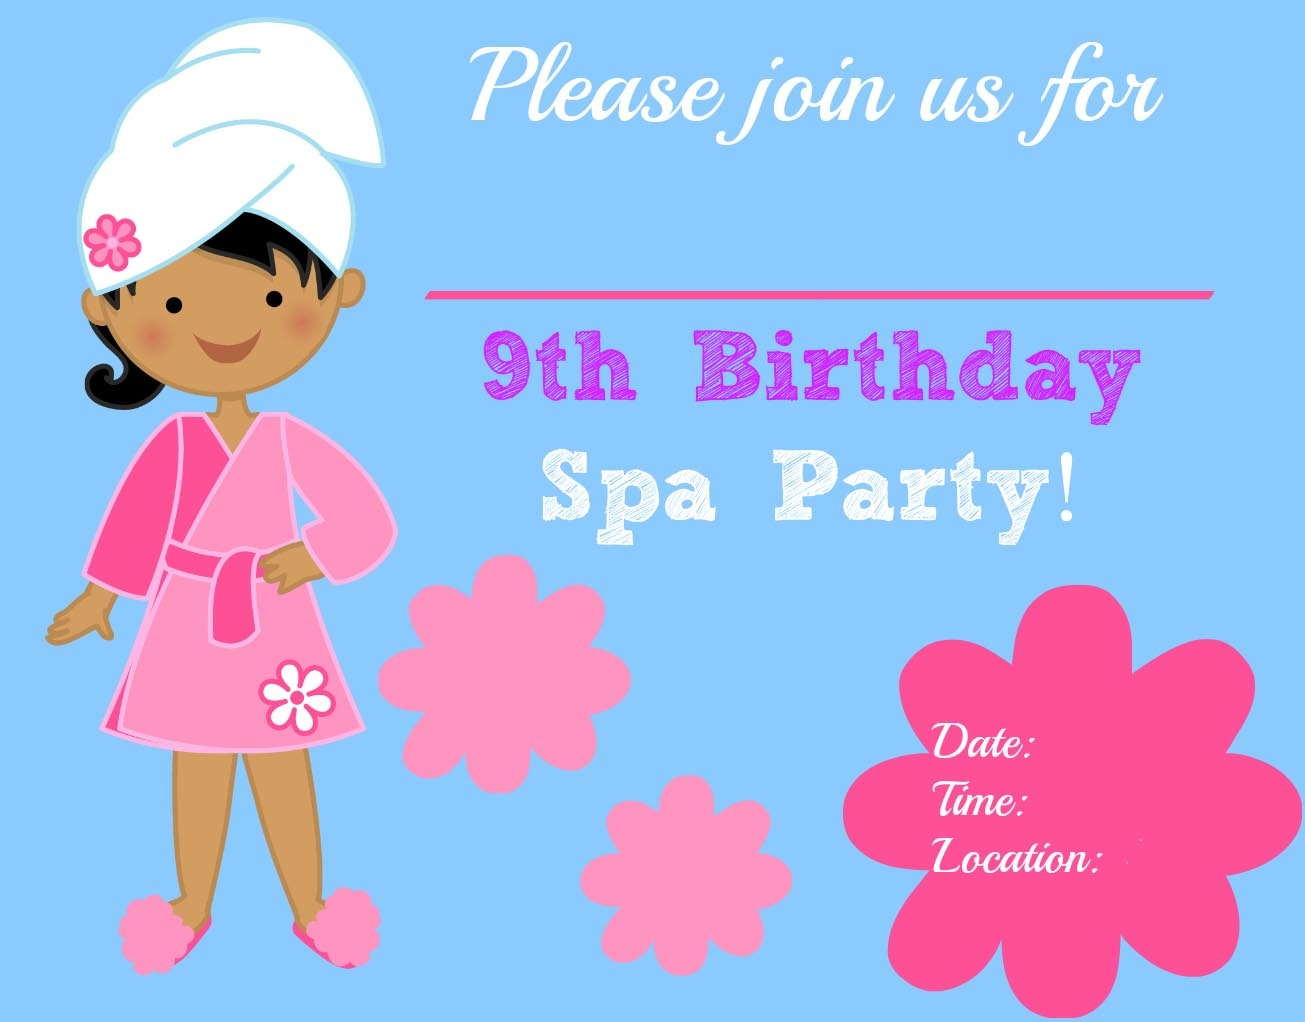 Free Printable Spa Party Invitations | Home Party Ideas - Free Printable Spa Party Invitations Templates